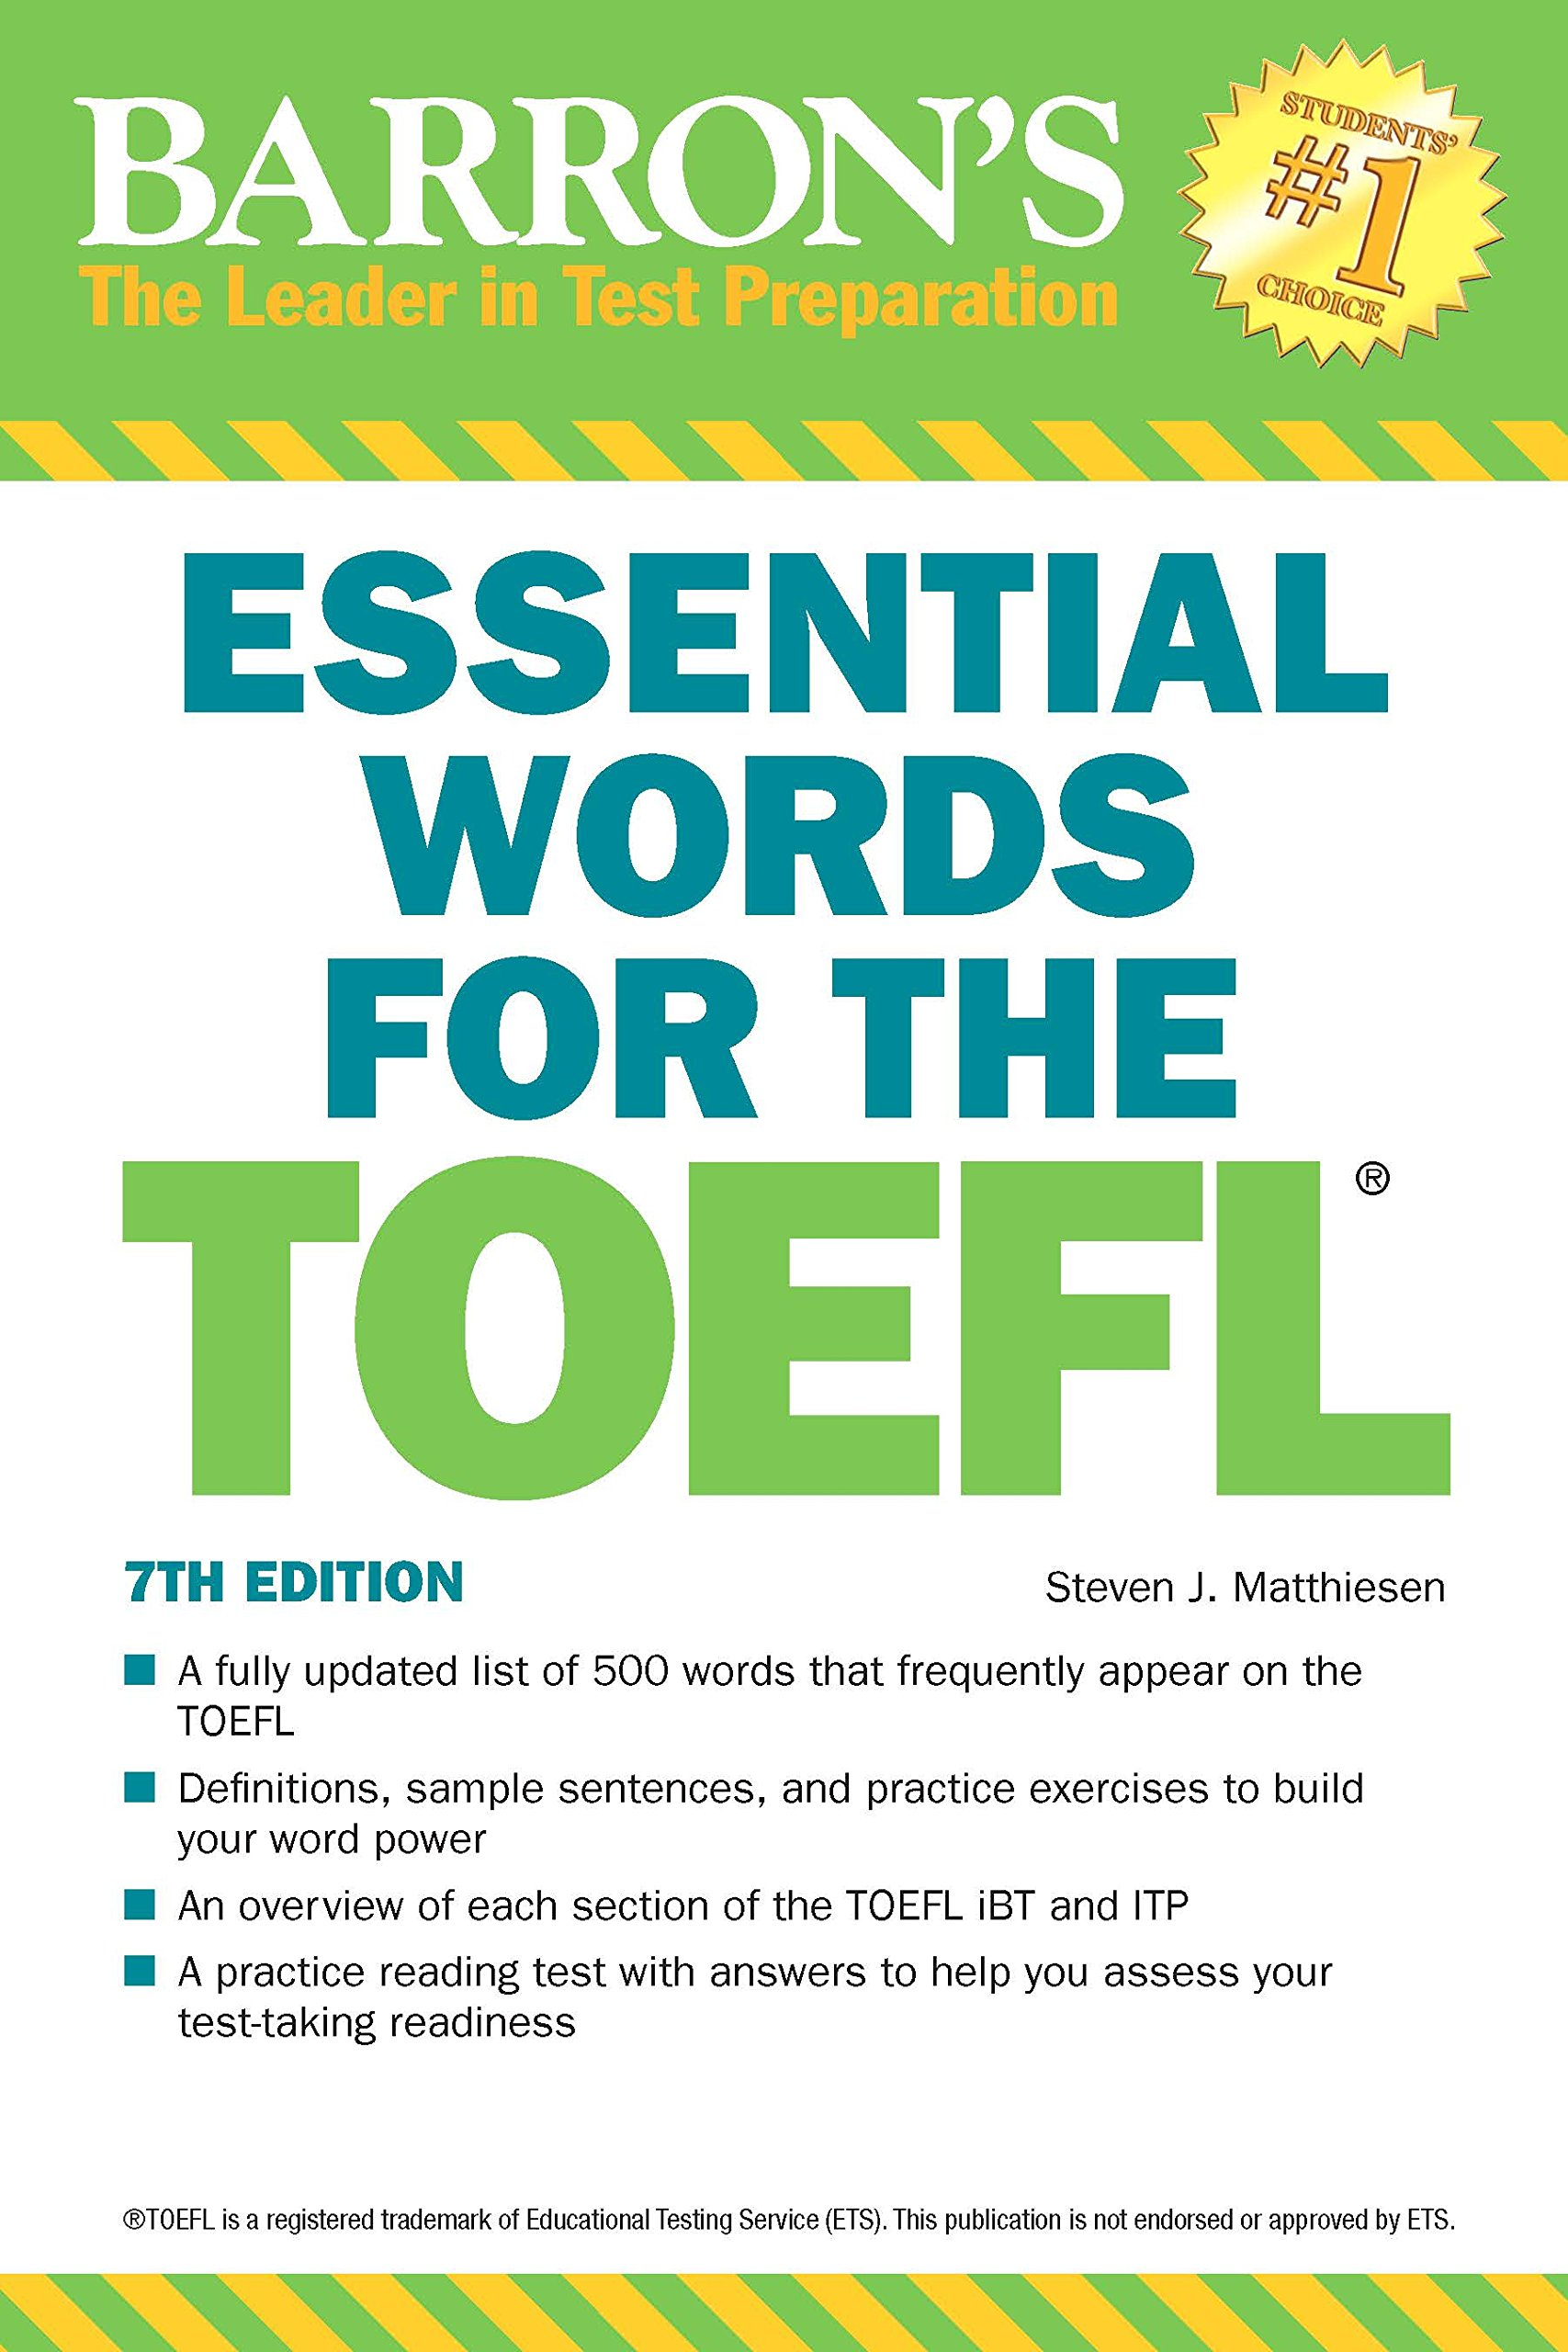 Essential Words for the TOEFL, 7th Edition by BARRONS